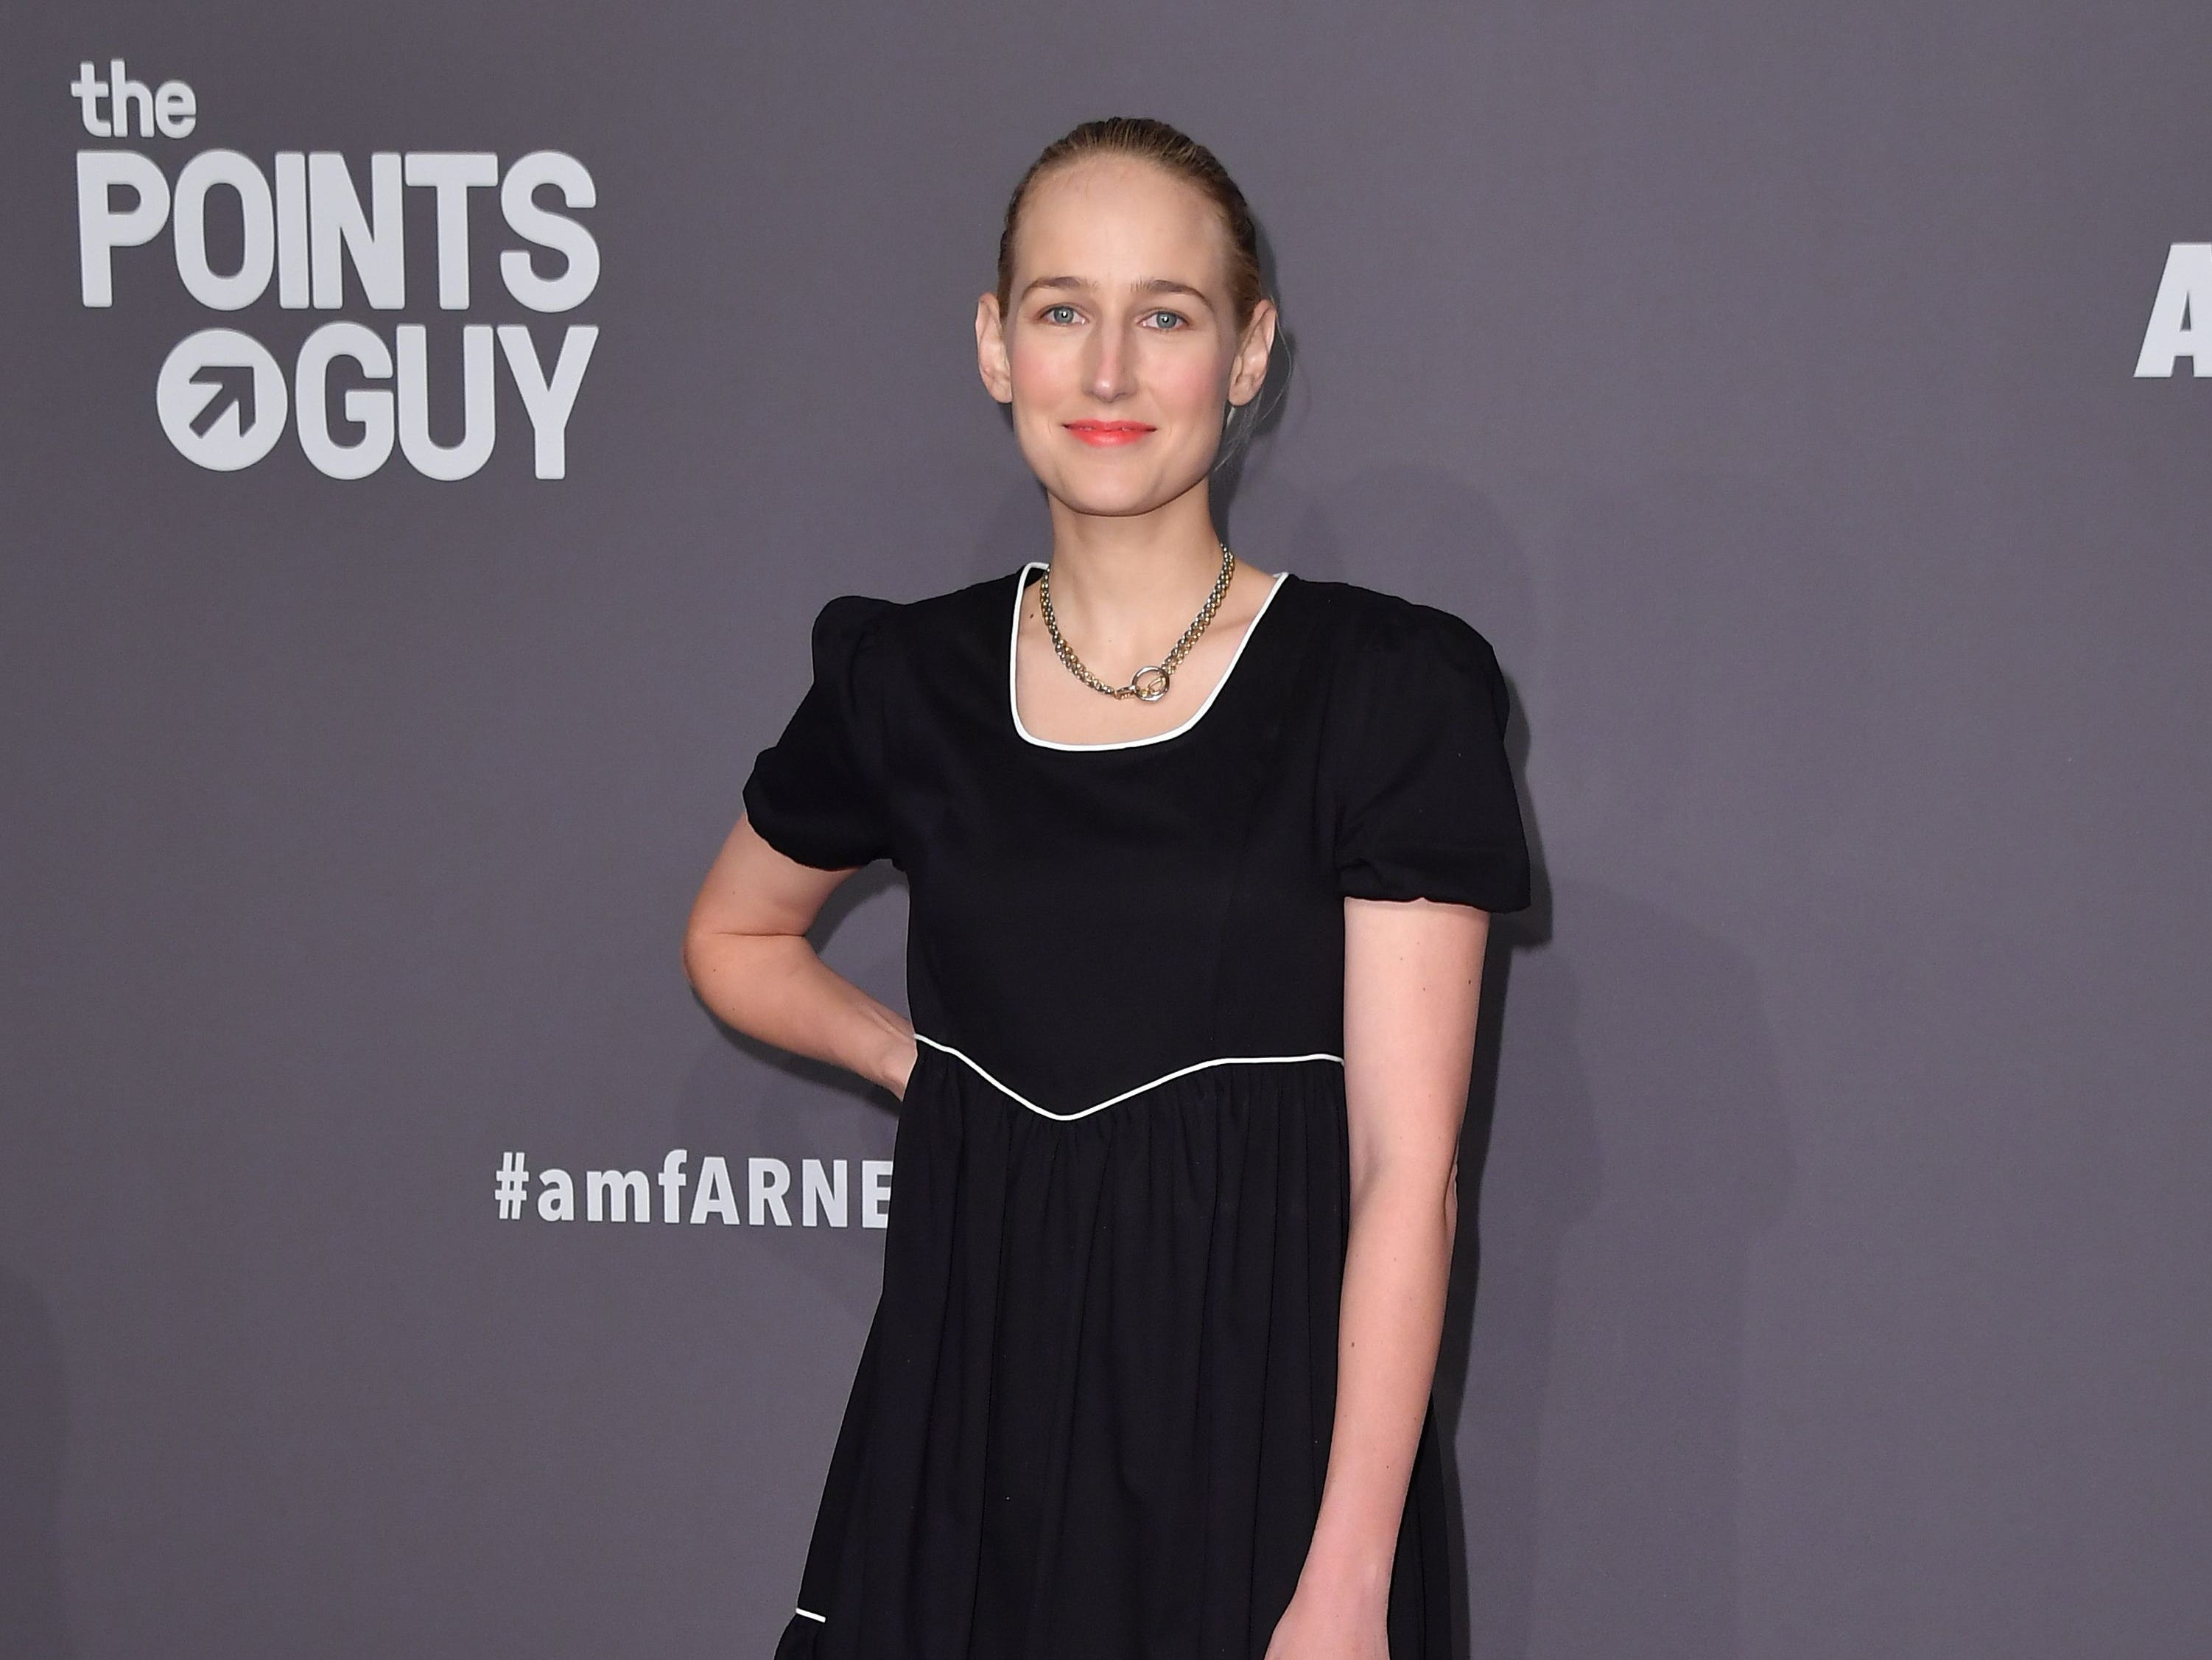 US actress Leelee Sobieski arrives to attend the amfAR Gala New York at Cipriani Wall Street in New York City on February 6, 2019. (Photo by ANGELA WEISS / AFP)ANGELA WEISS/AFP/Getty Images ORIG FILE ID: AFP_1D46MT